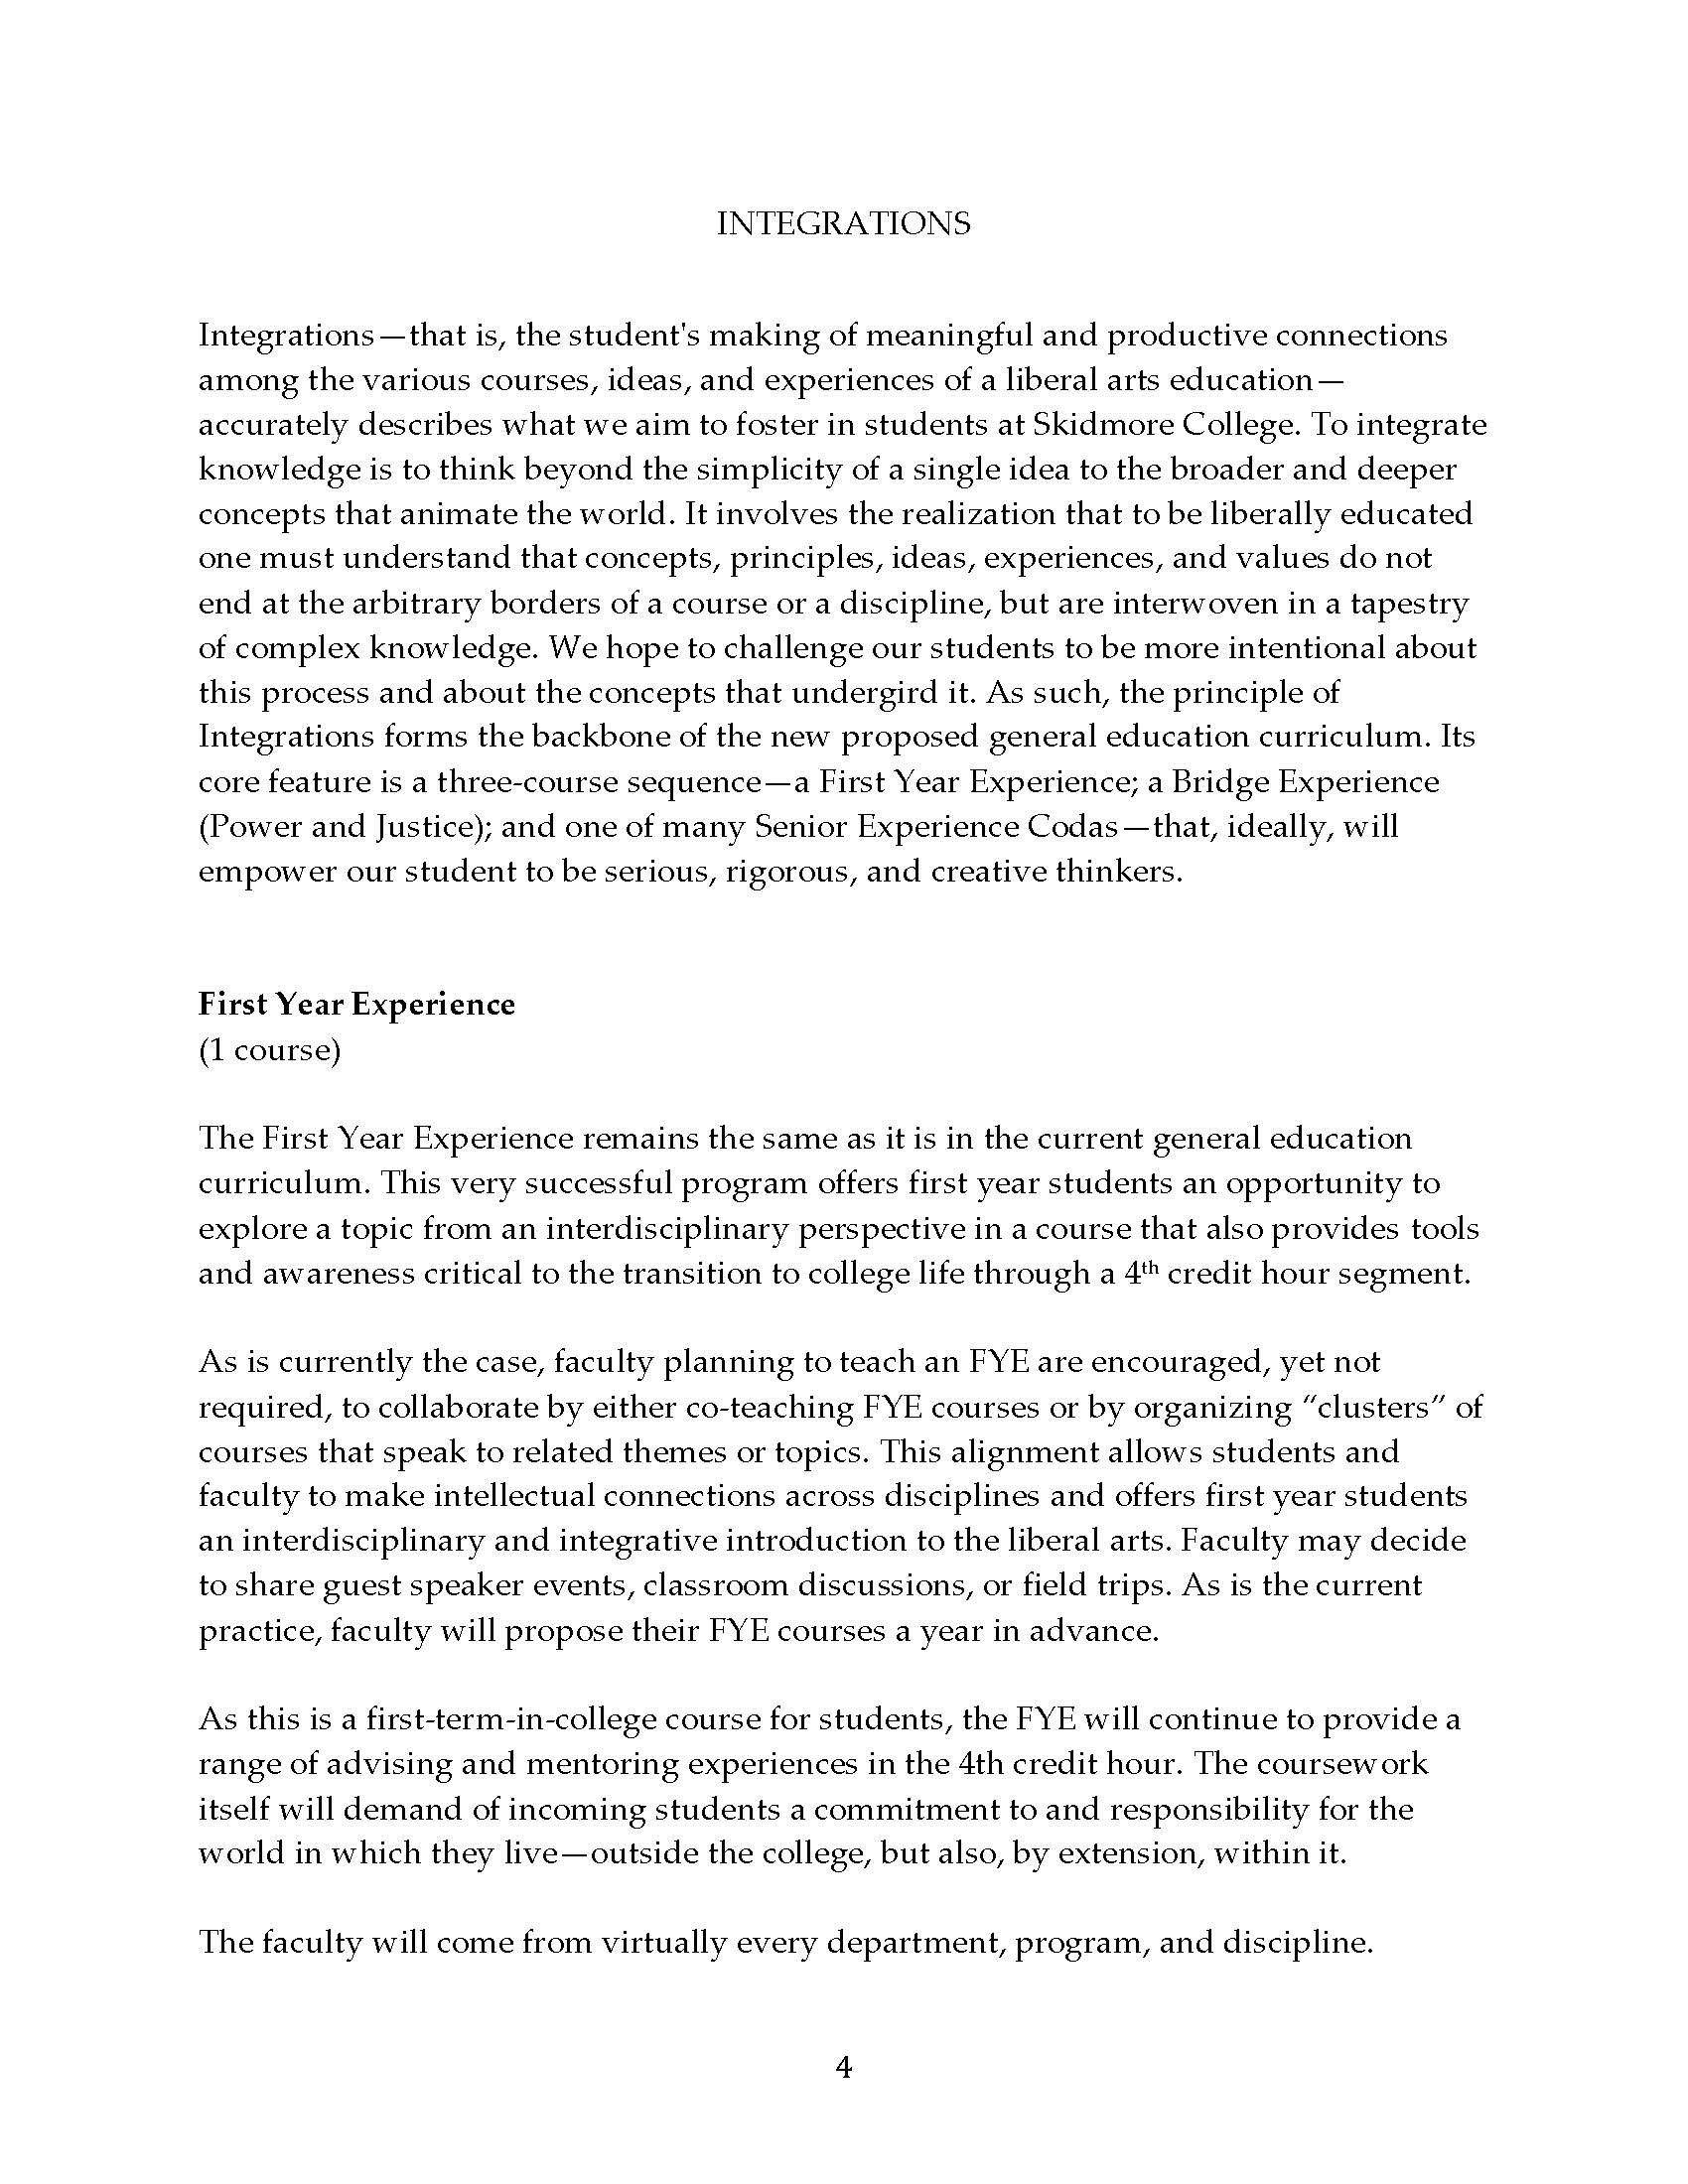 General Education Proposal February 28 2017_Page_04.jpg